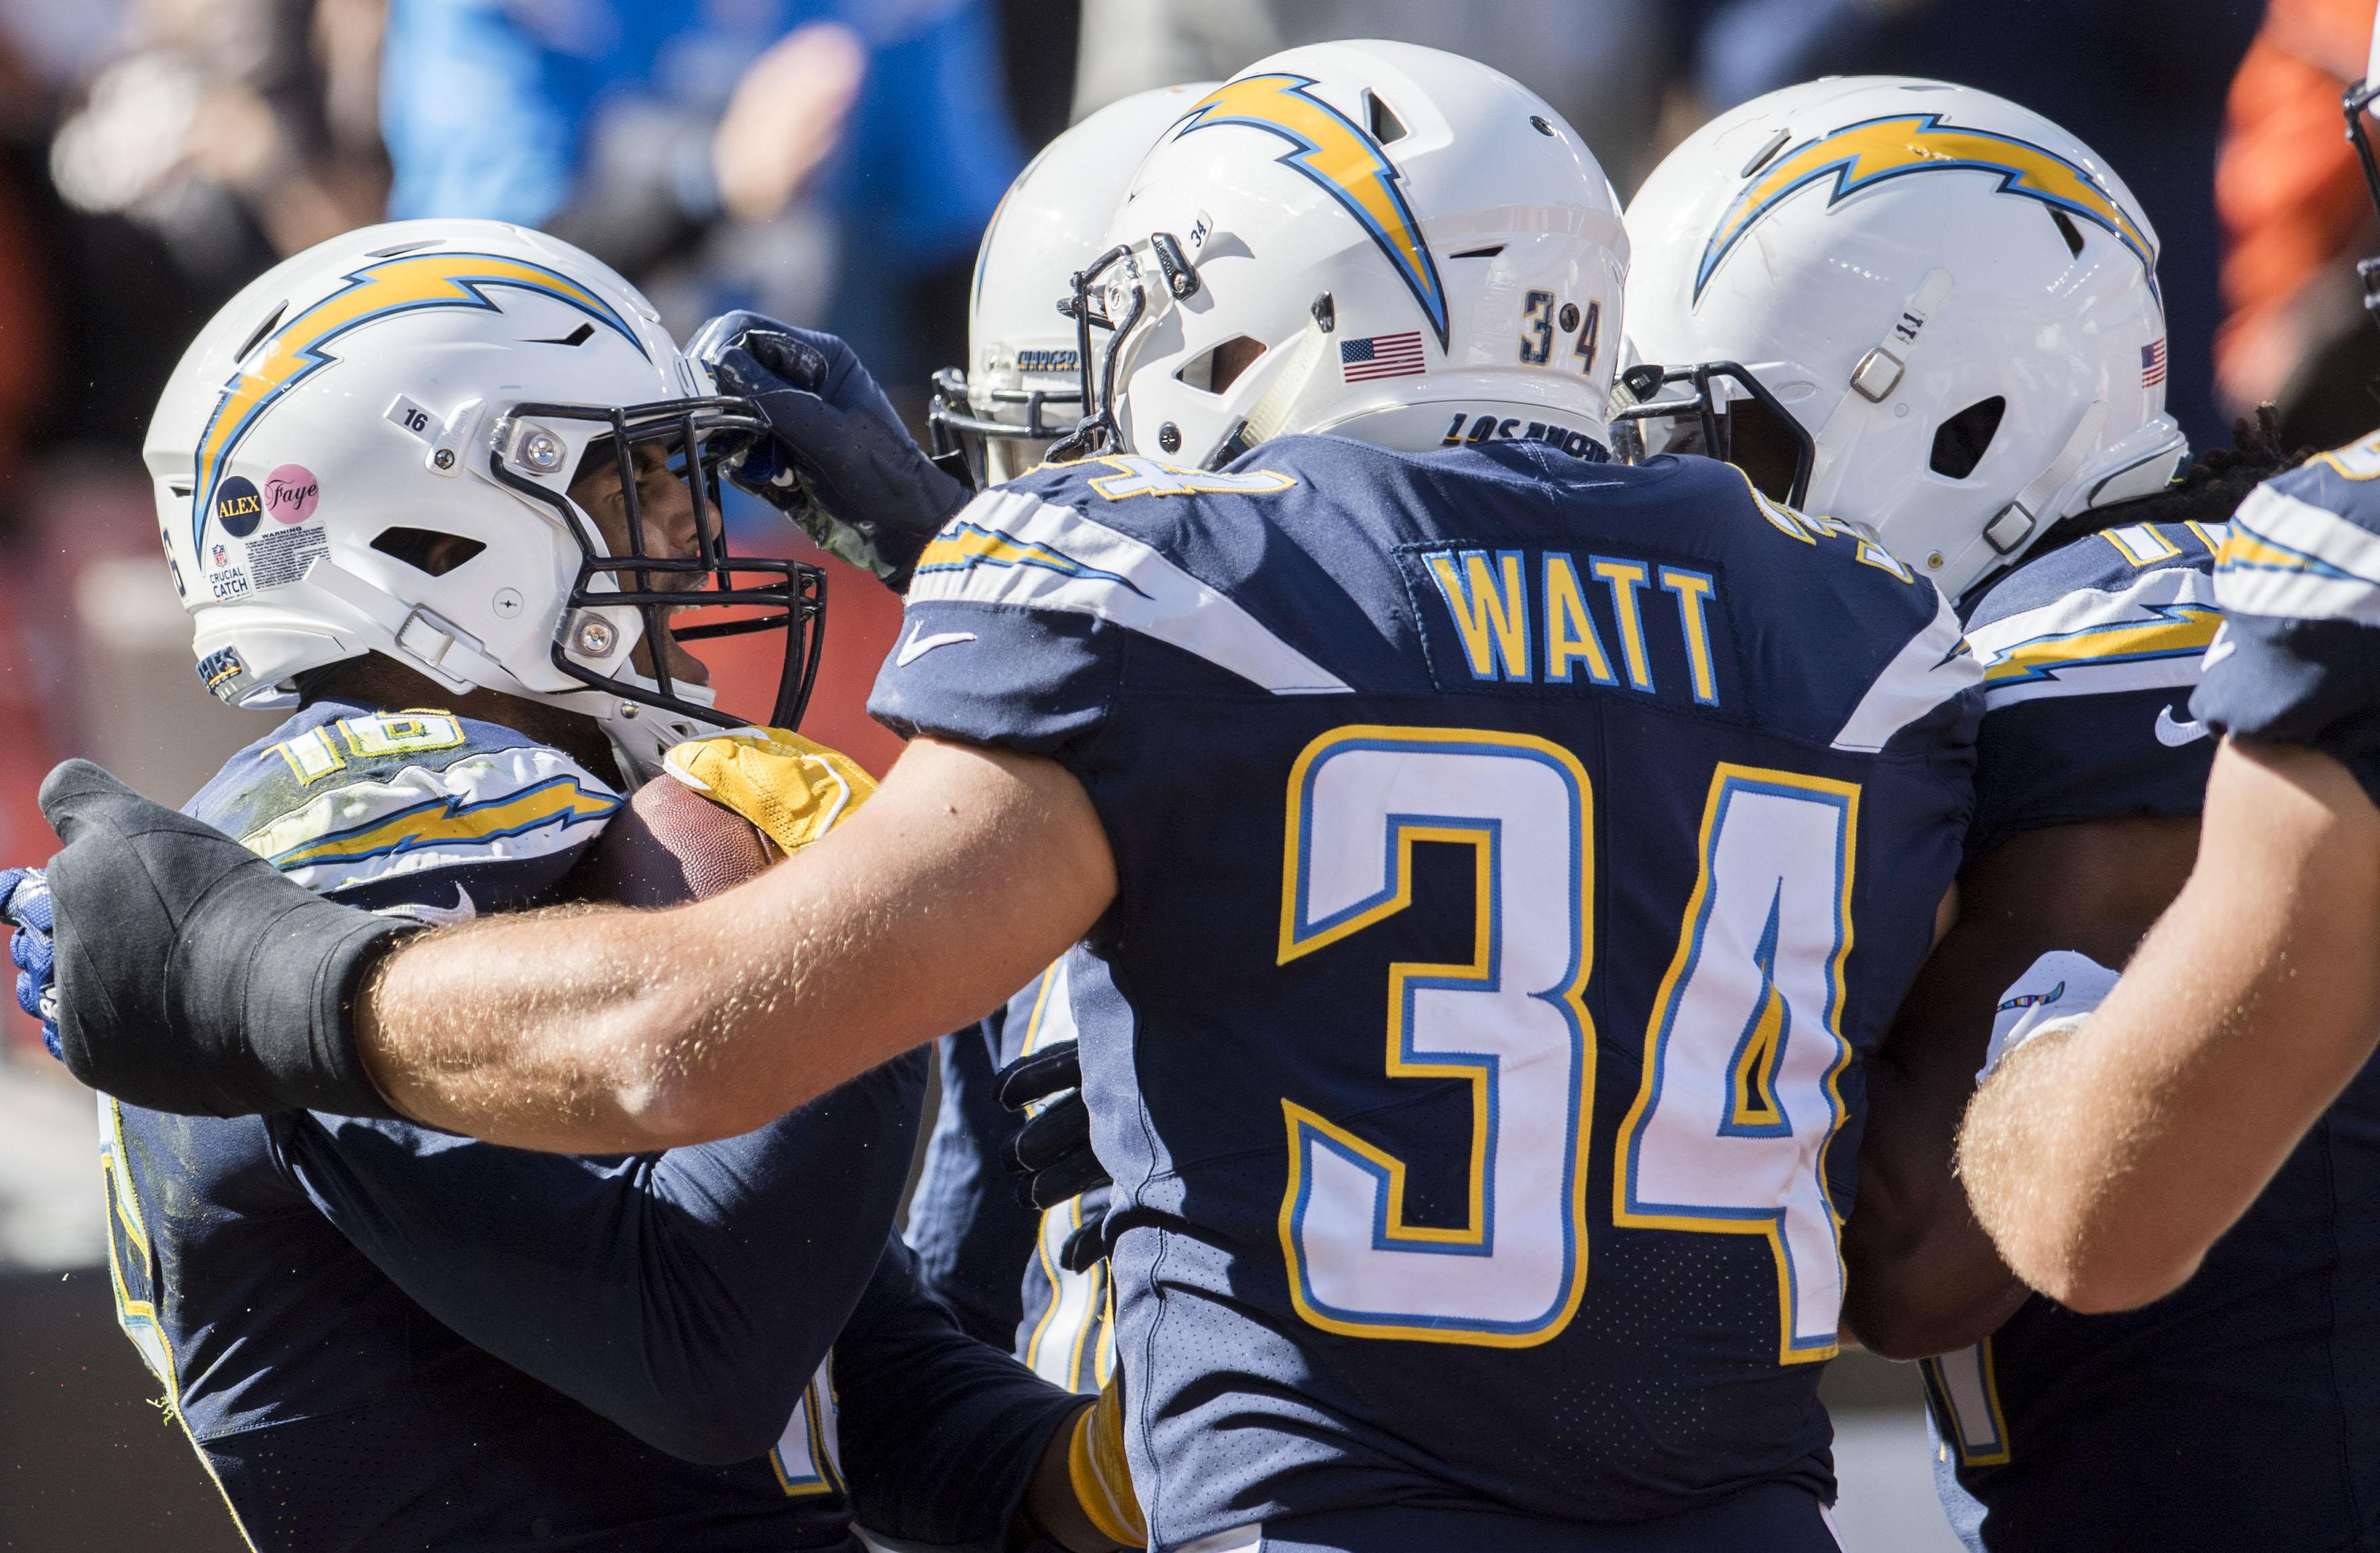 The Chargers were brilliant as they thrashed the Browns last week